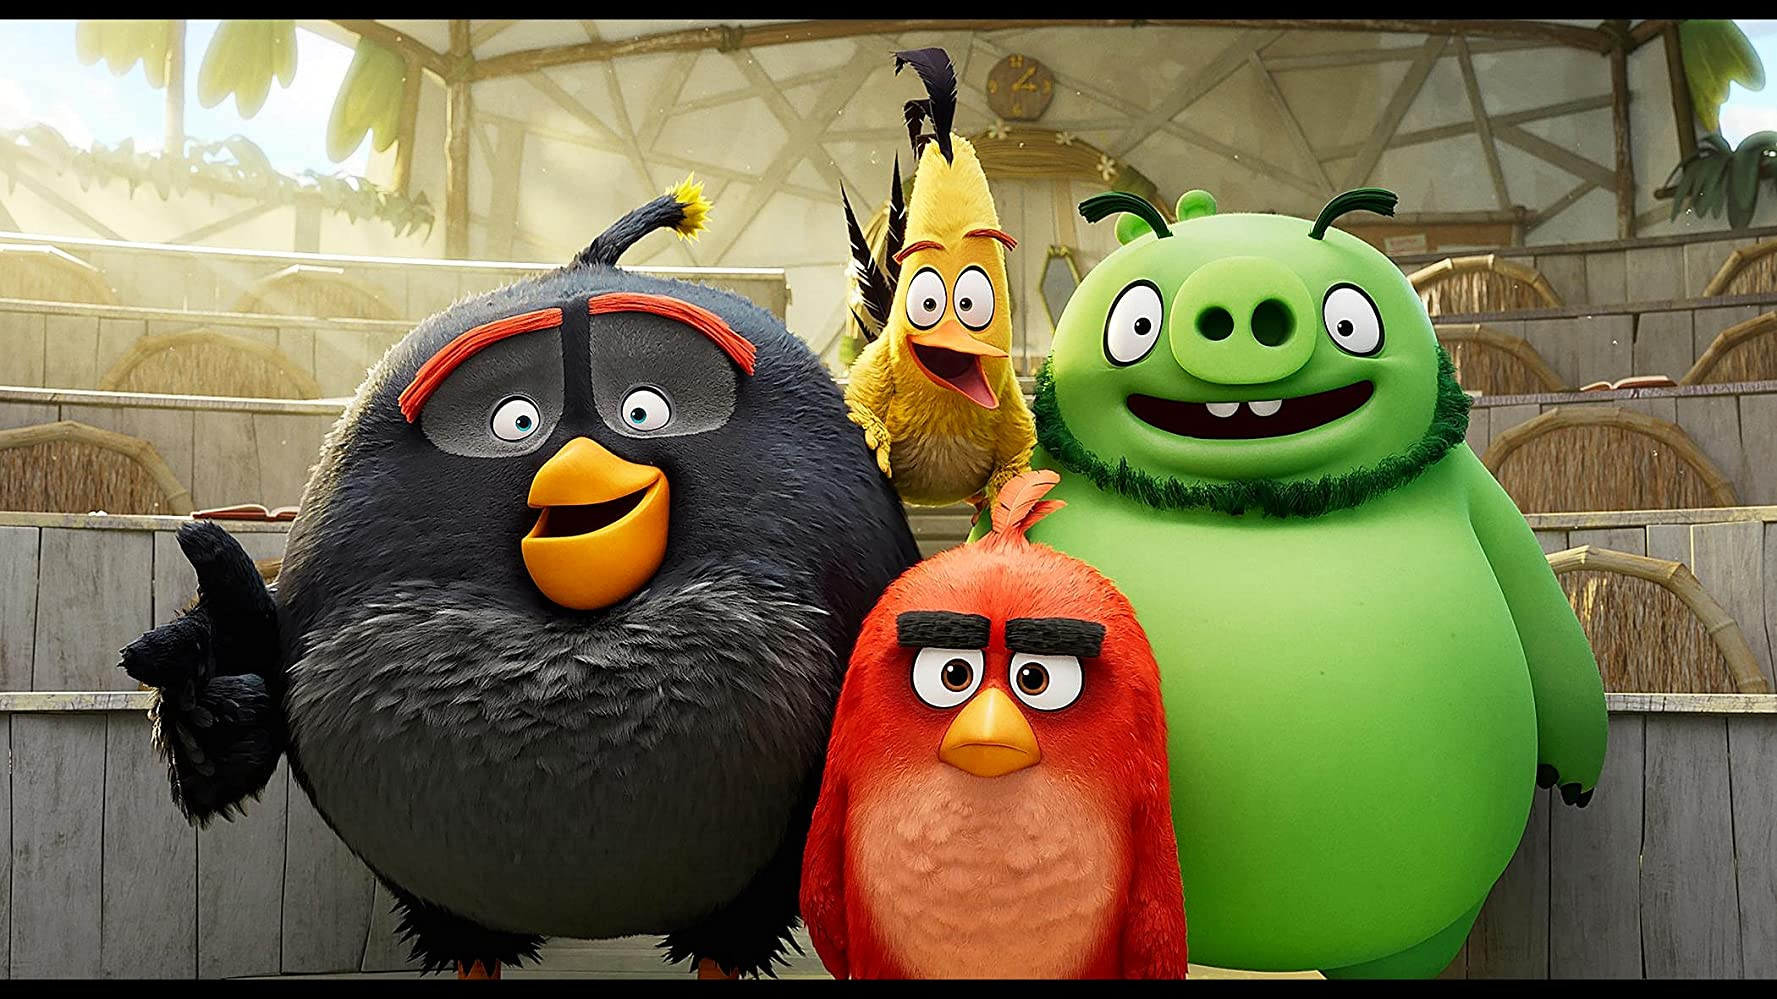 Bill Hader, Jason Sudeikis, Danny McBride, and Josh Gad in The Angry Birds Movie 2 (2019)